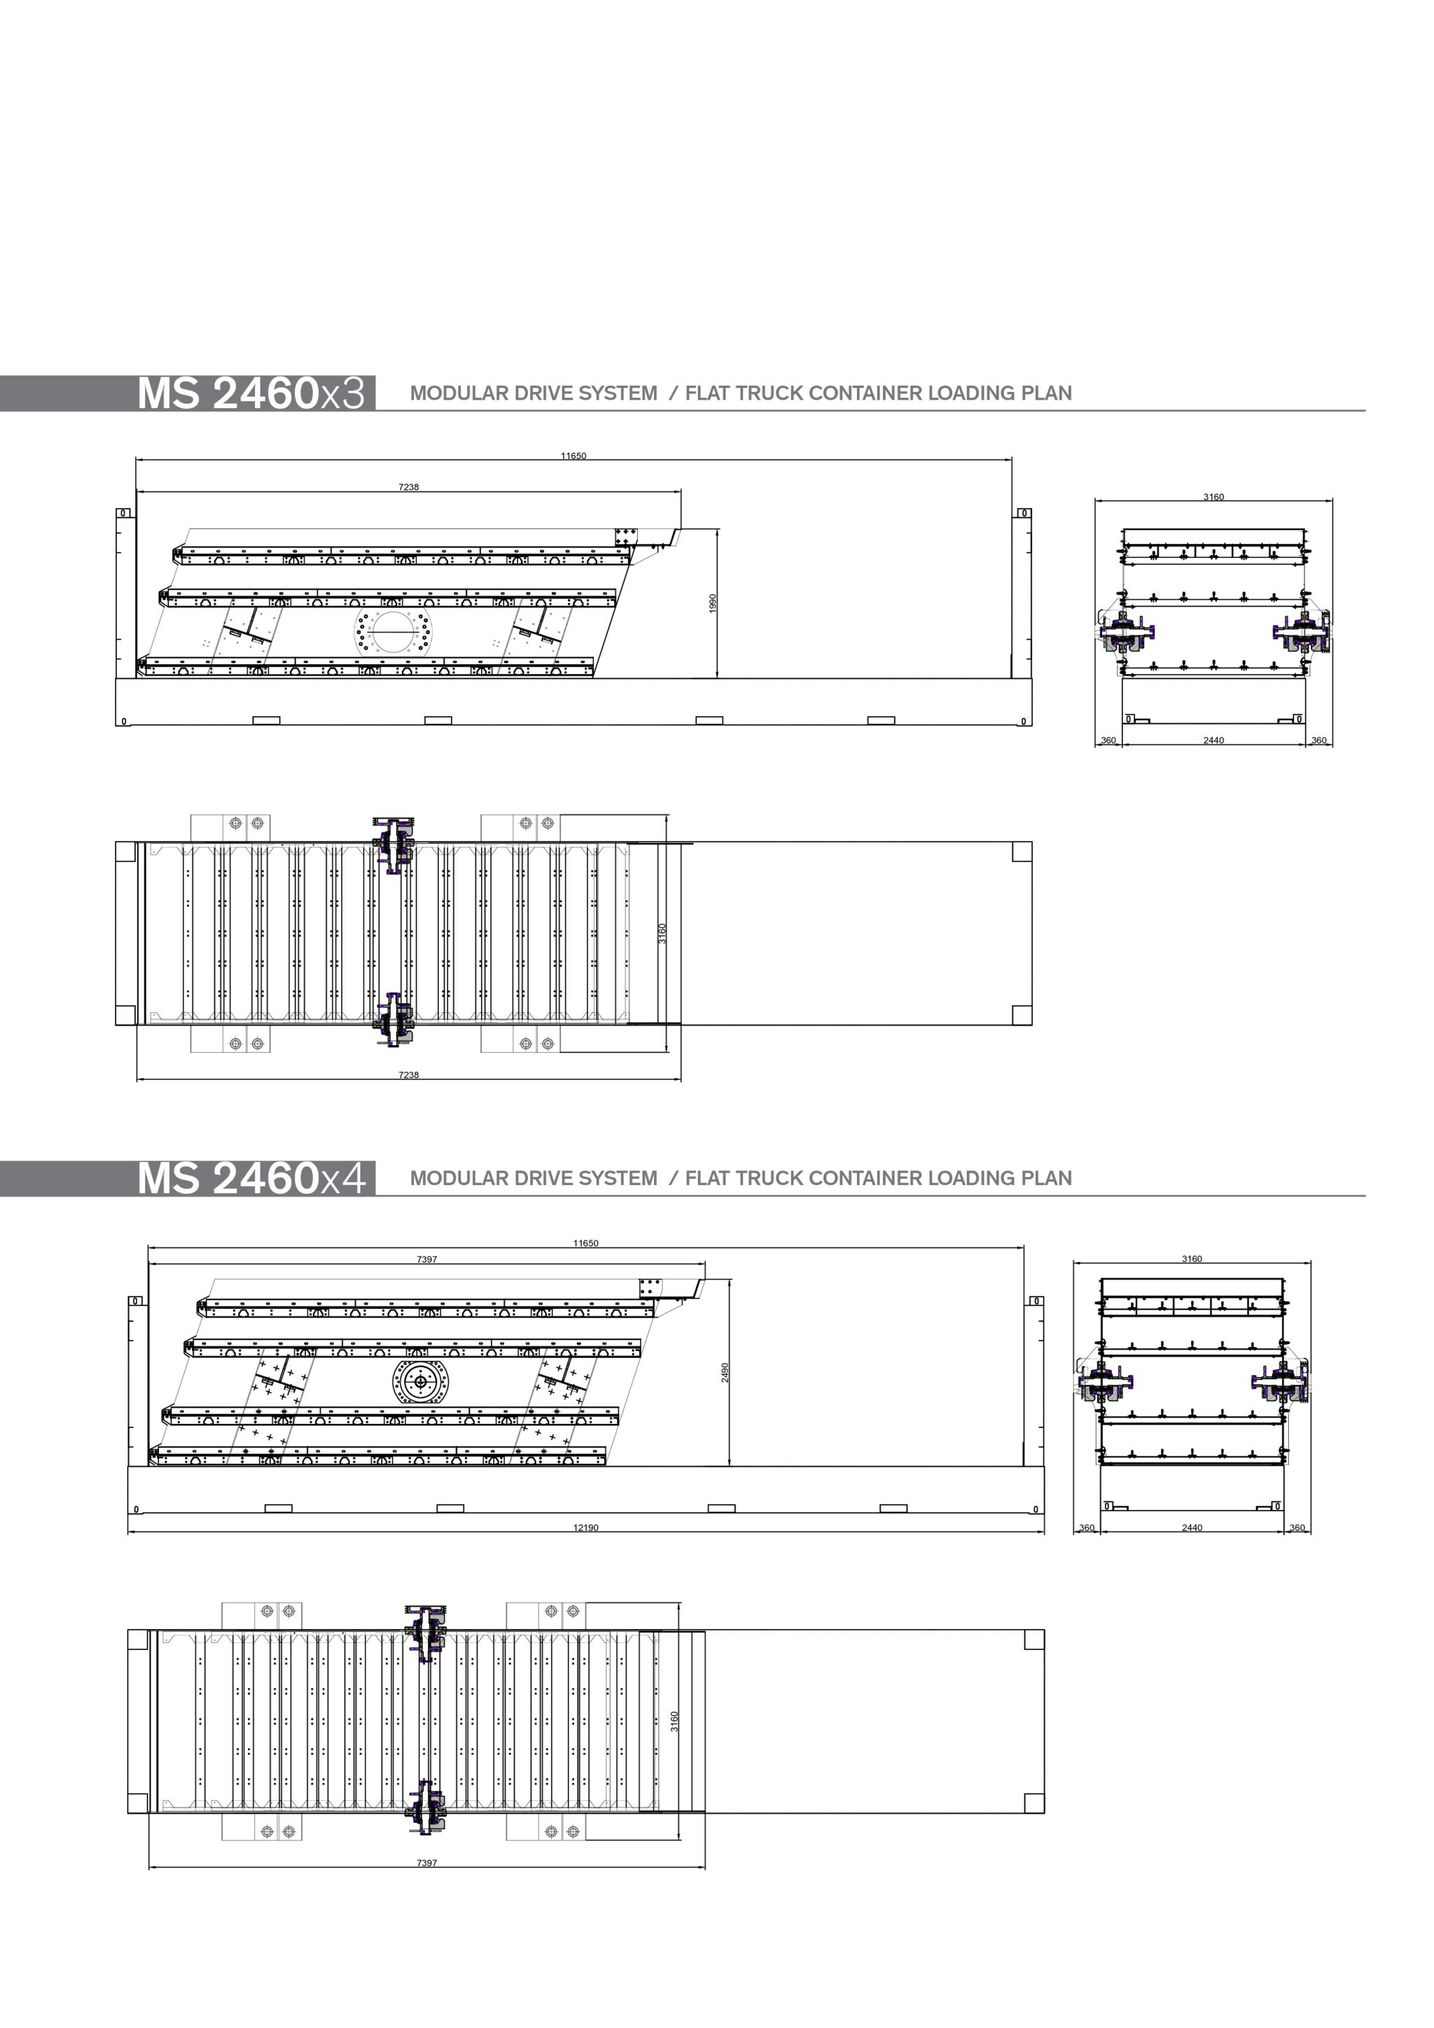 modular drive system/flat truck container loading plan ms 2460x4 modular drive system/flat truck container loading plan